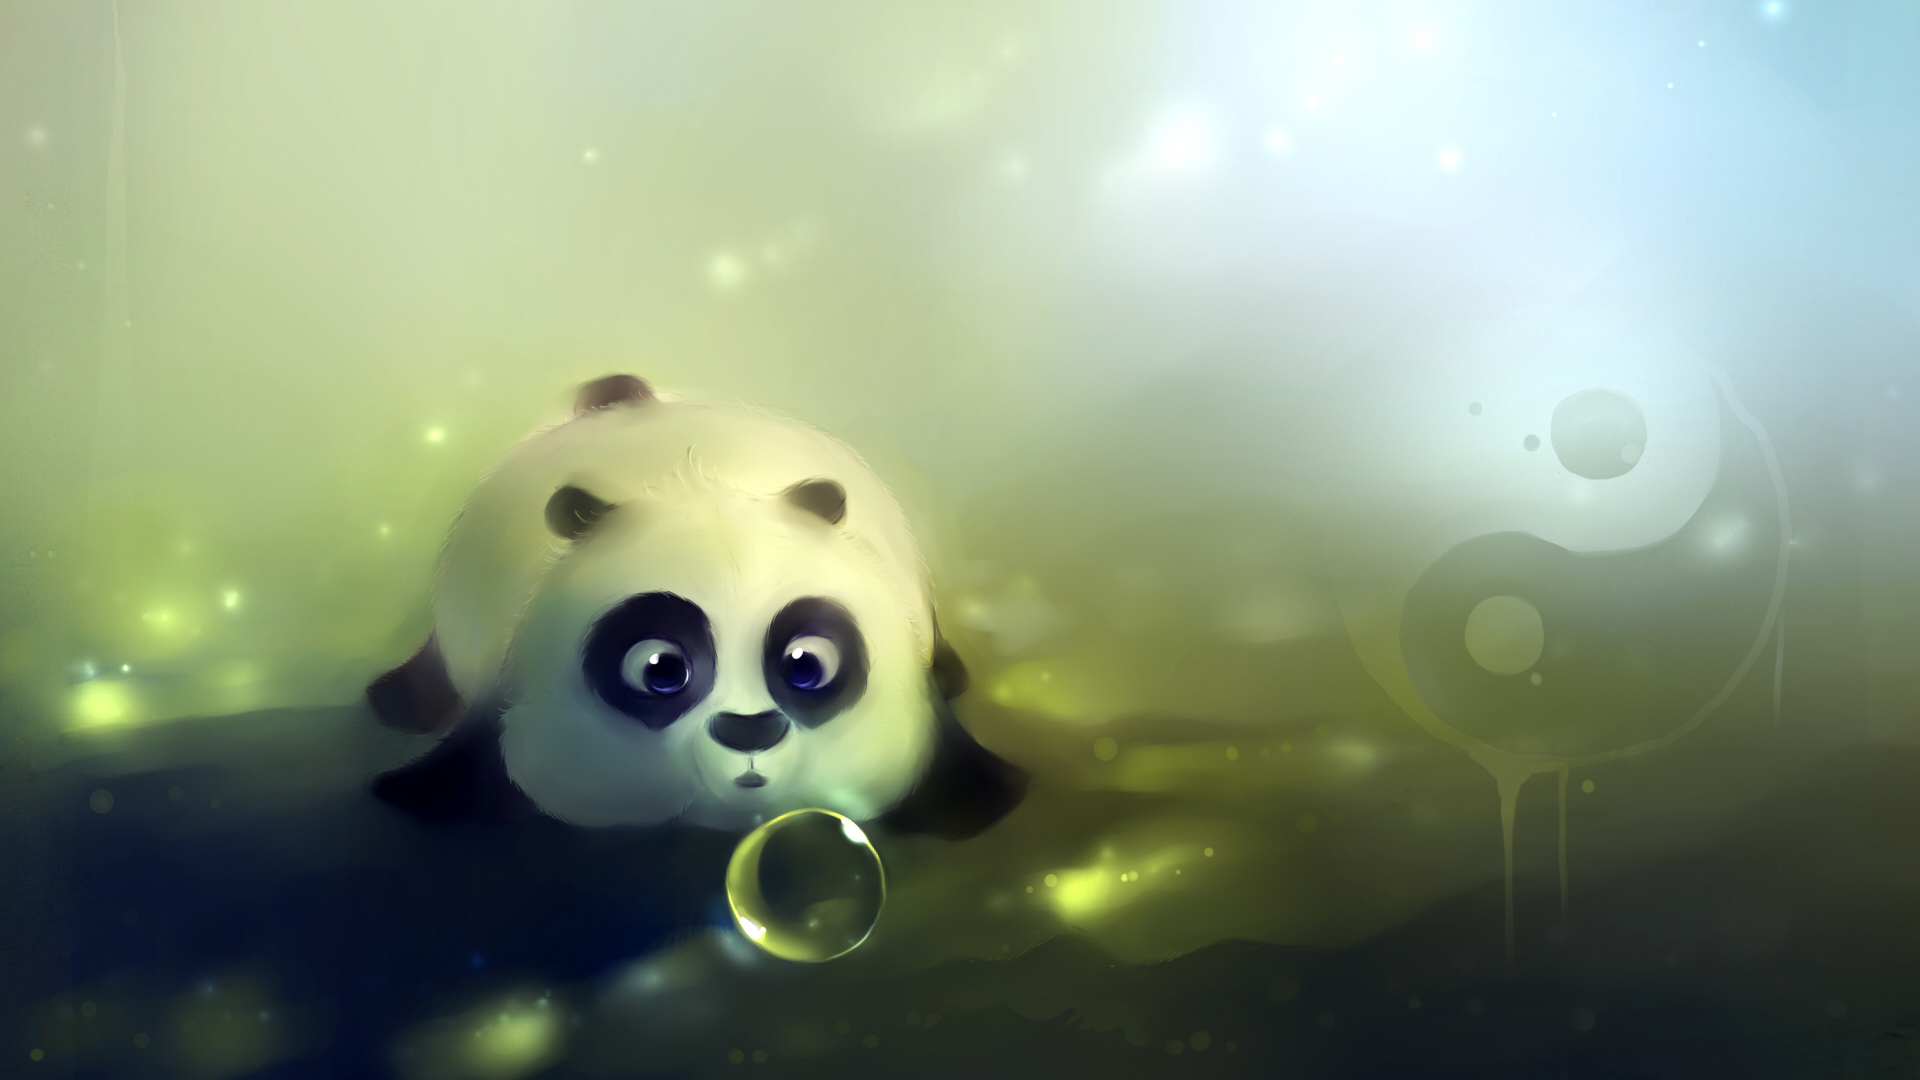 Download-panda-bear-bear-bubble-bulb-lies-yin-yang-dampling-drawing-animals-resolu-wallpaper-wpc9004489